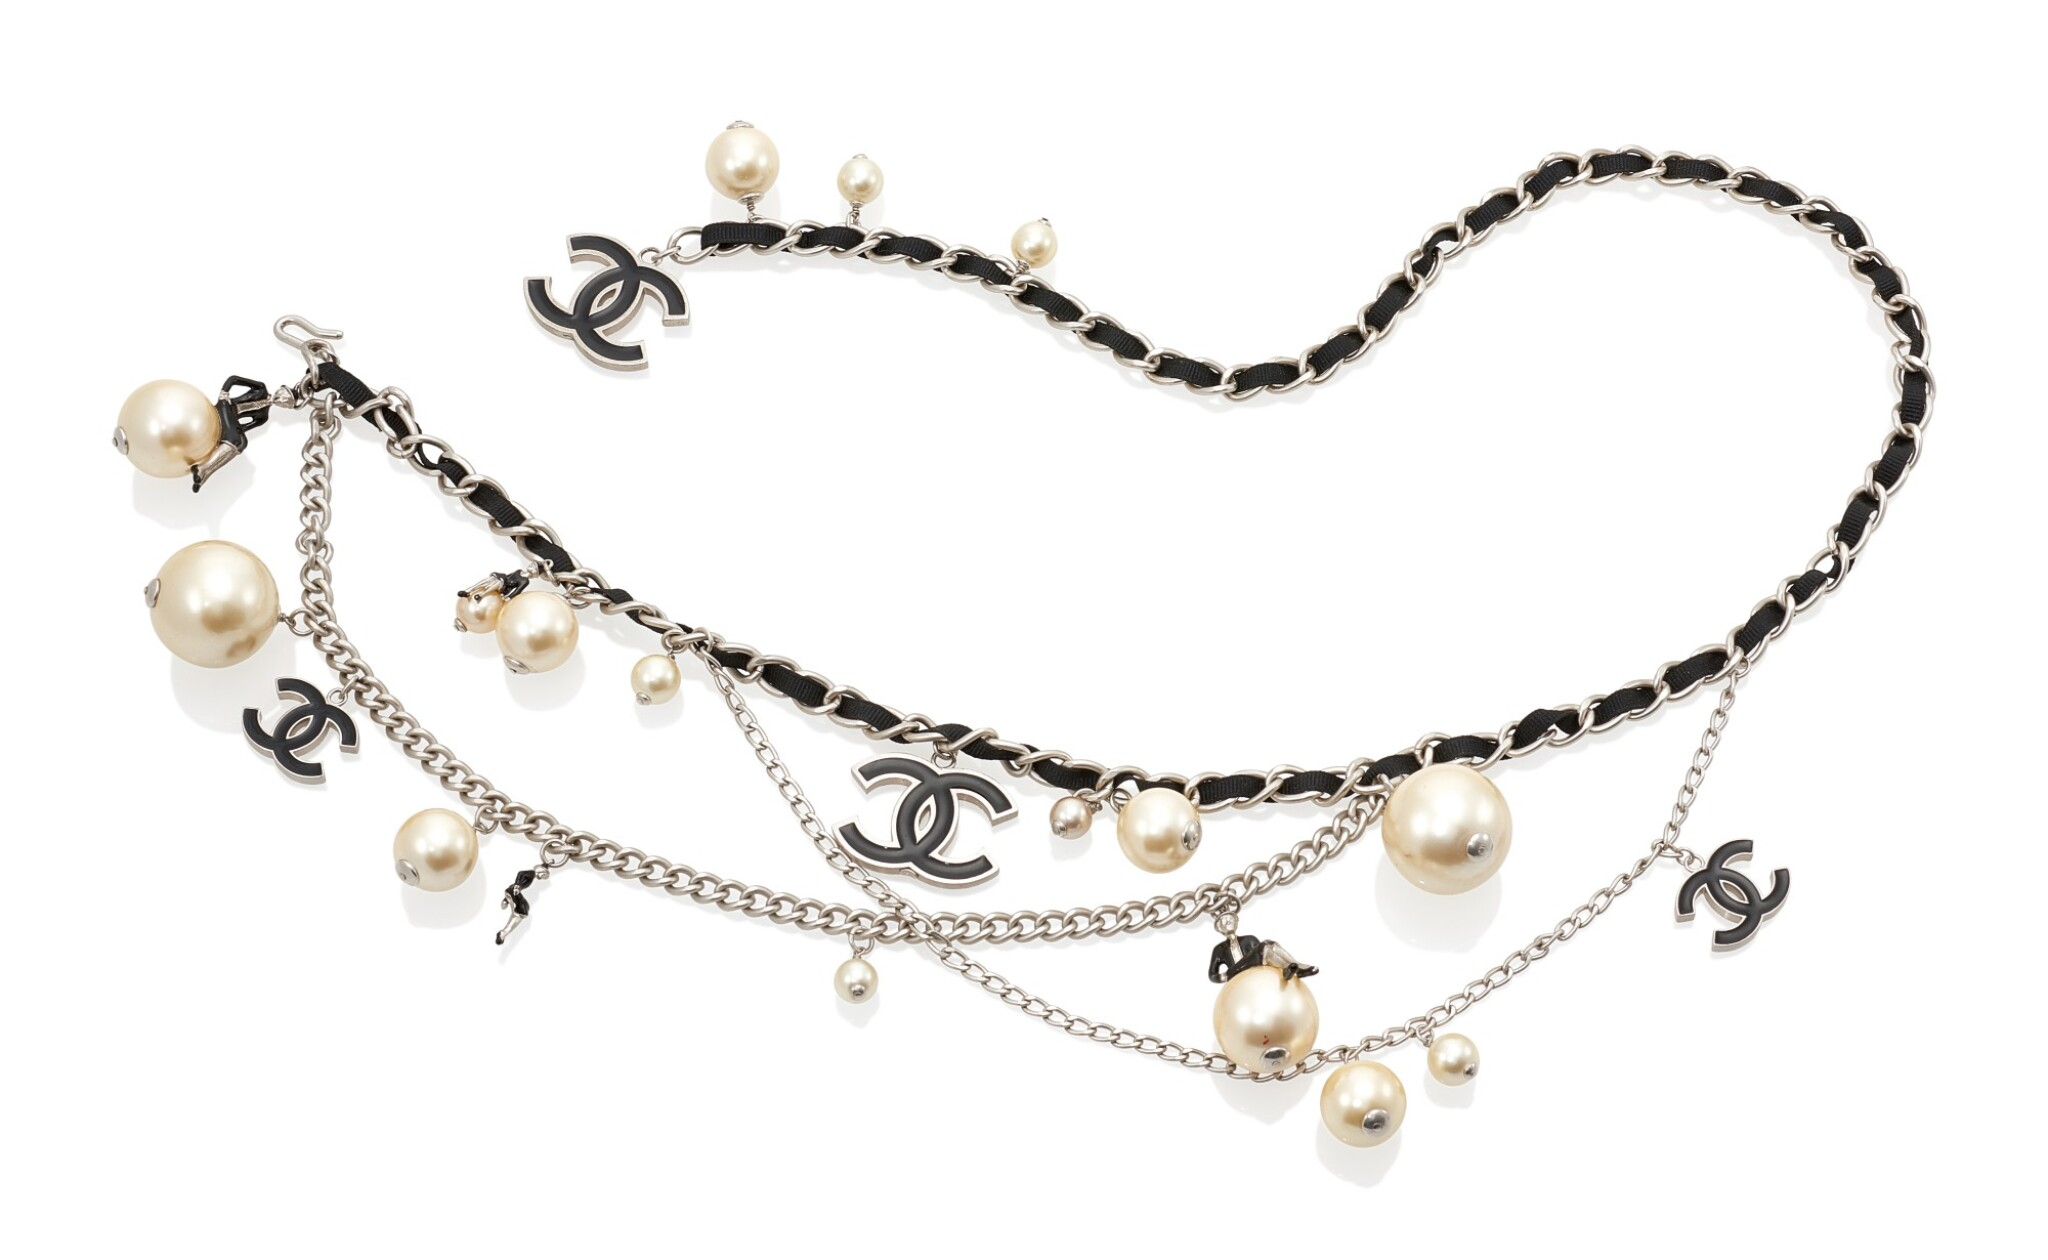 """COCO ON THE MOON"" CHAIN BELT, CHANEL"